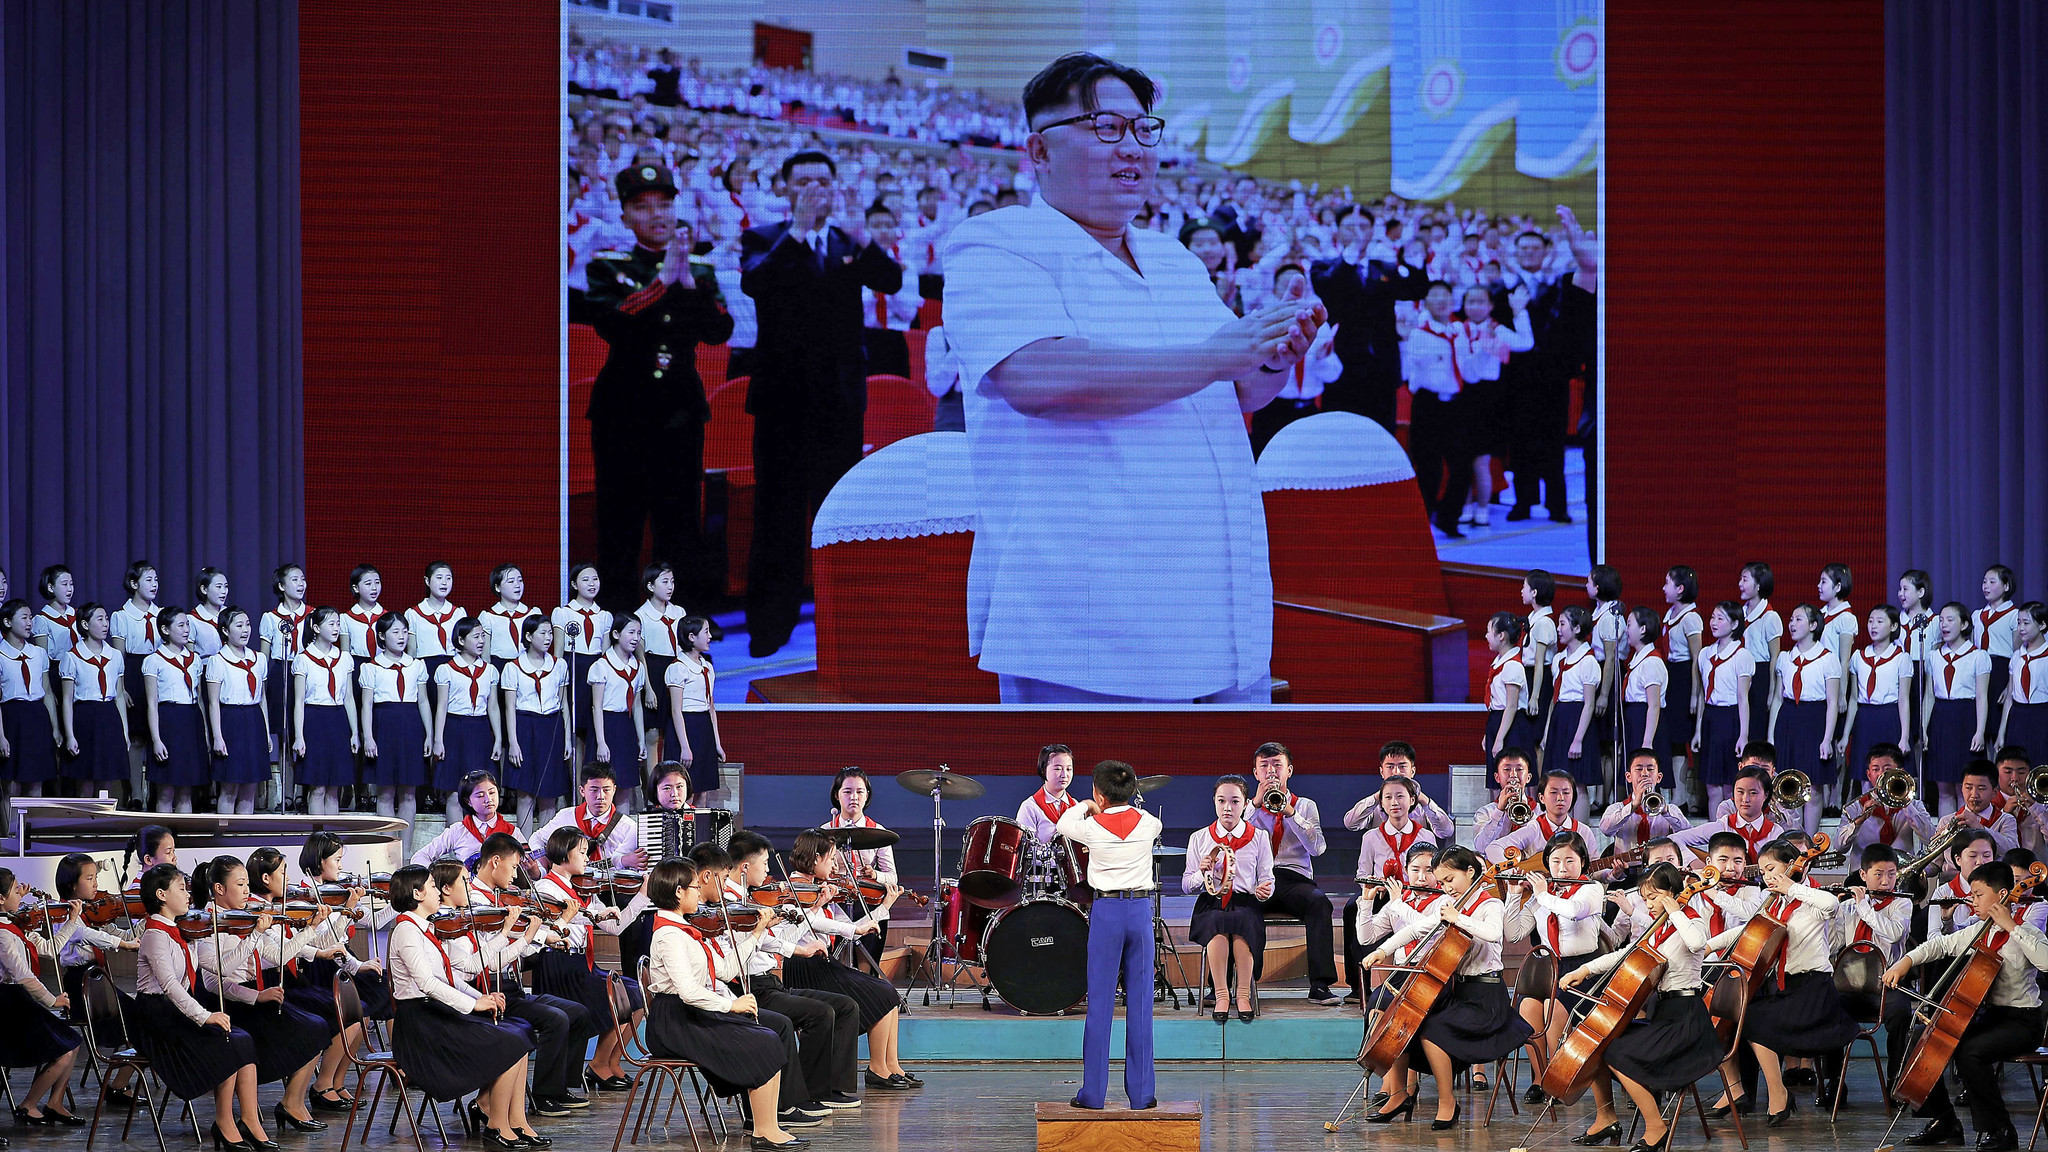 Young North Korean musicians perform against a backdrop image of leader Kim Jong Un.